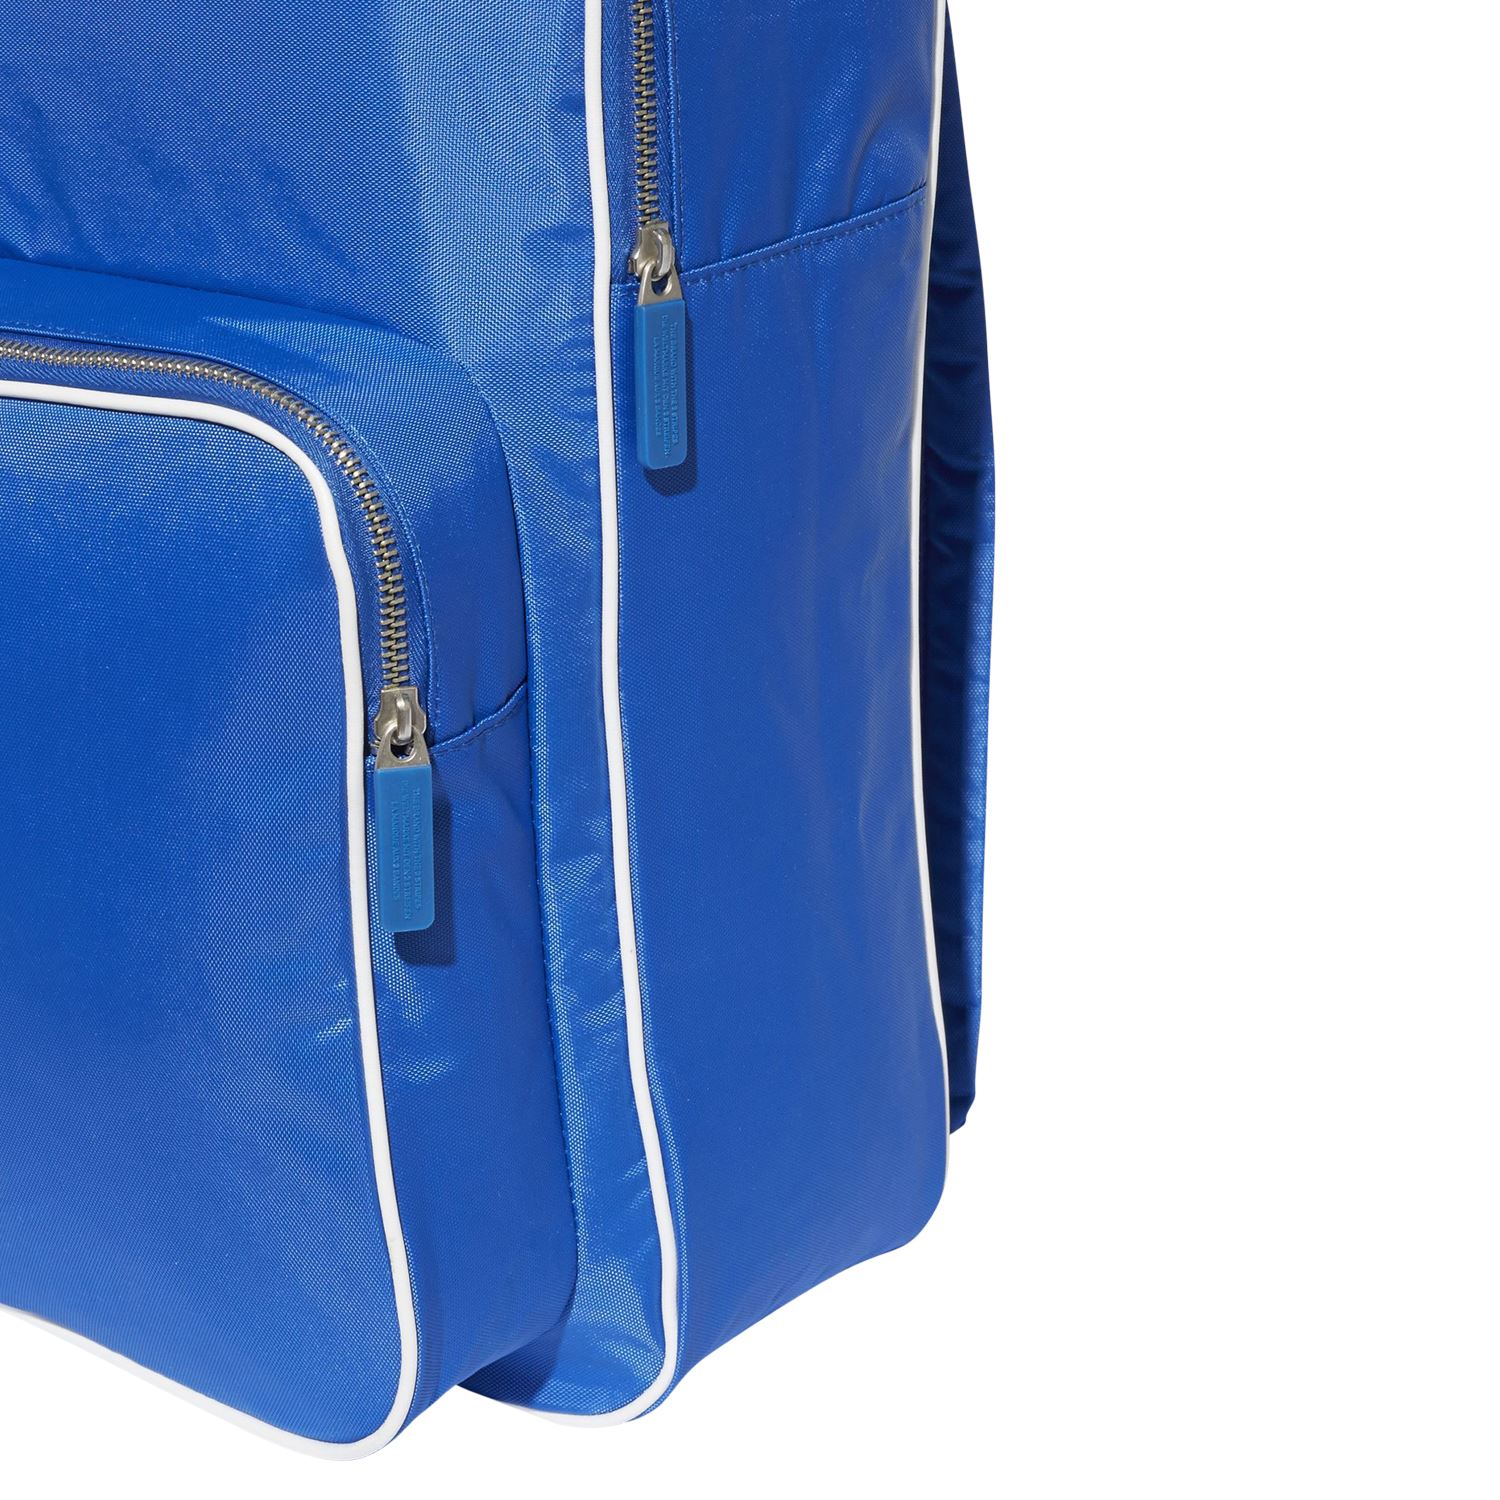 7a8ed943dfbf adidas ORIGINALS ADICOLOR TREFOIL BACKPACK BLUE BAGS COLLEGE SCHOOL  UNIVERSITY